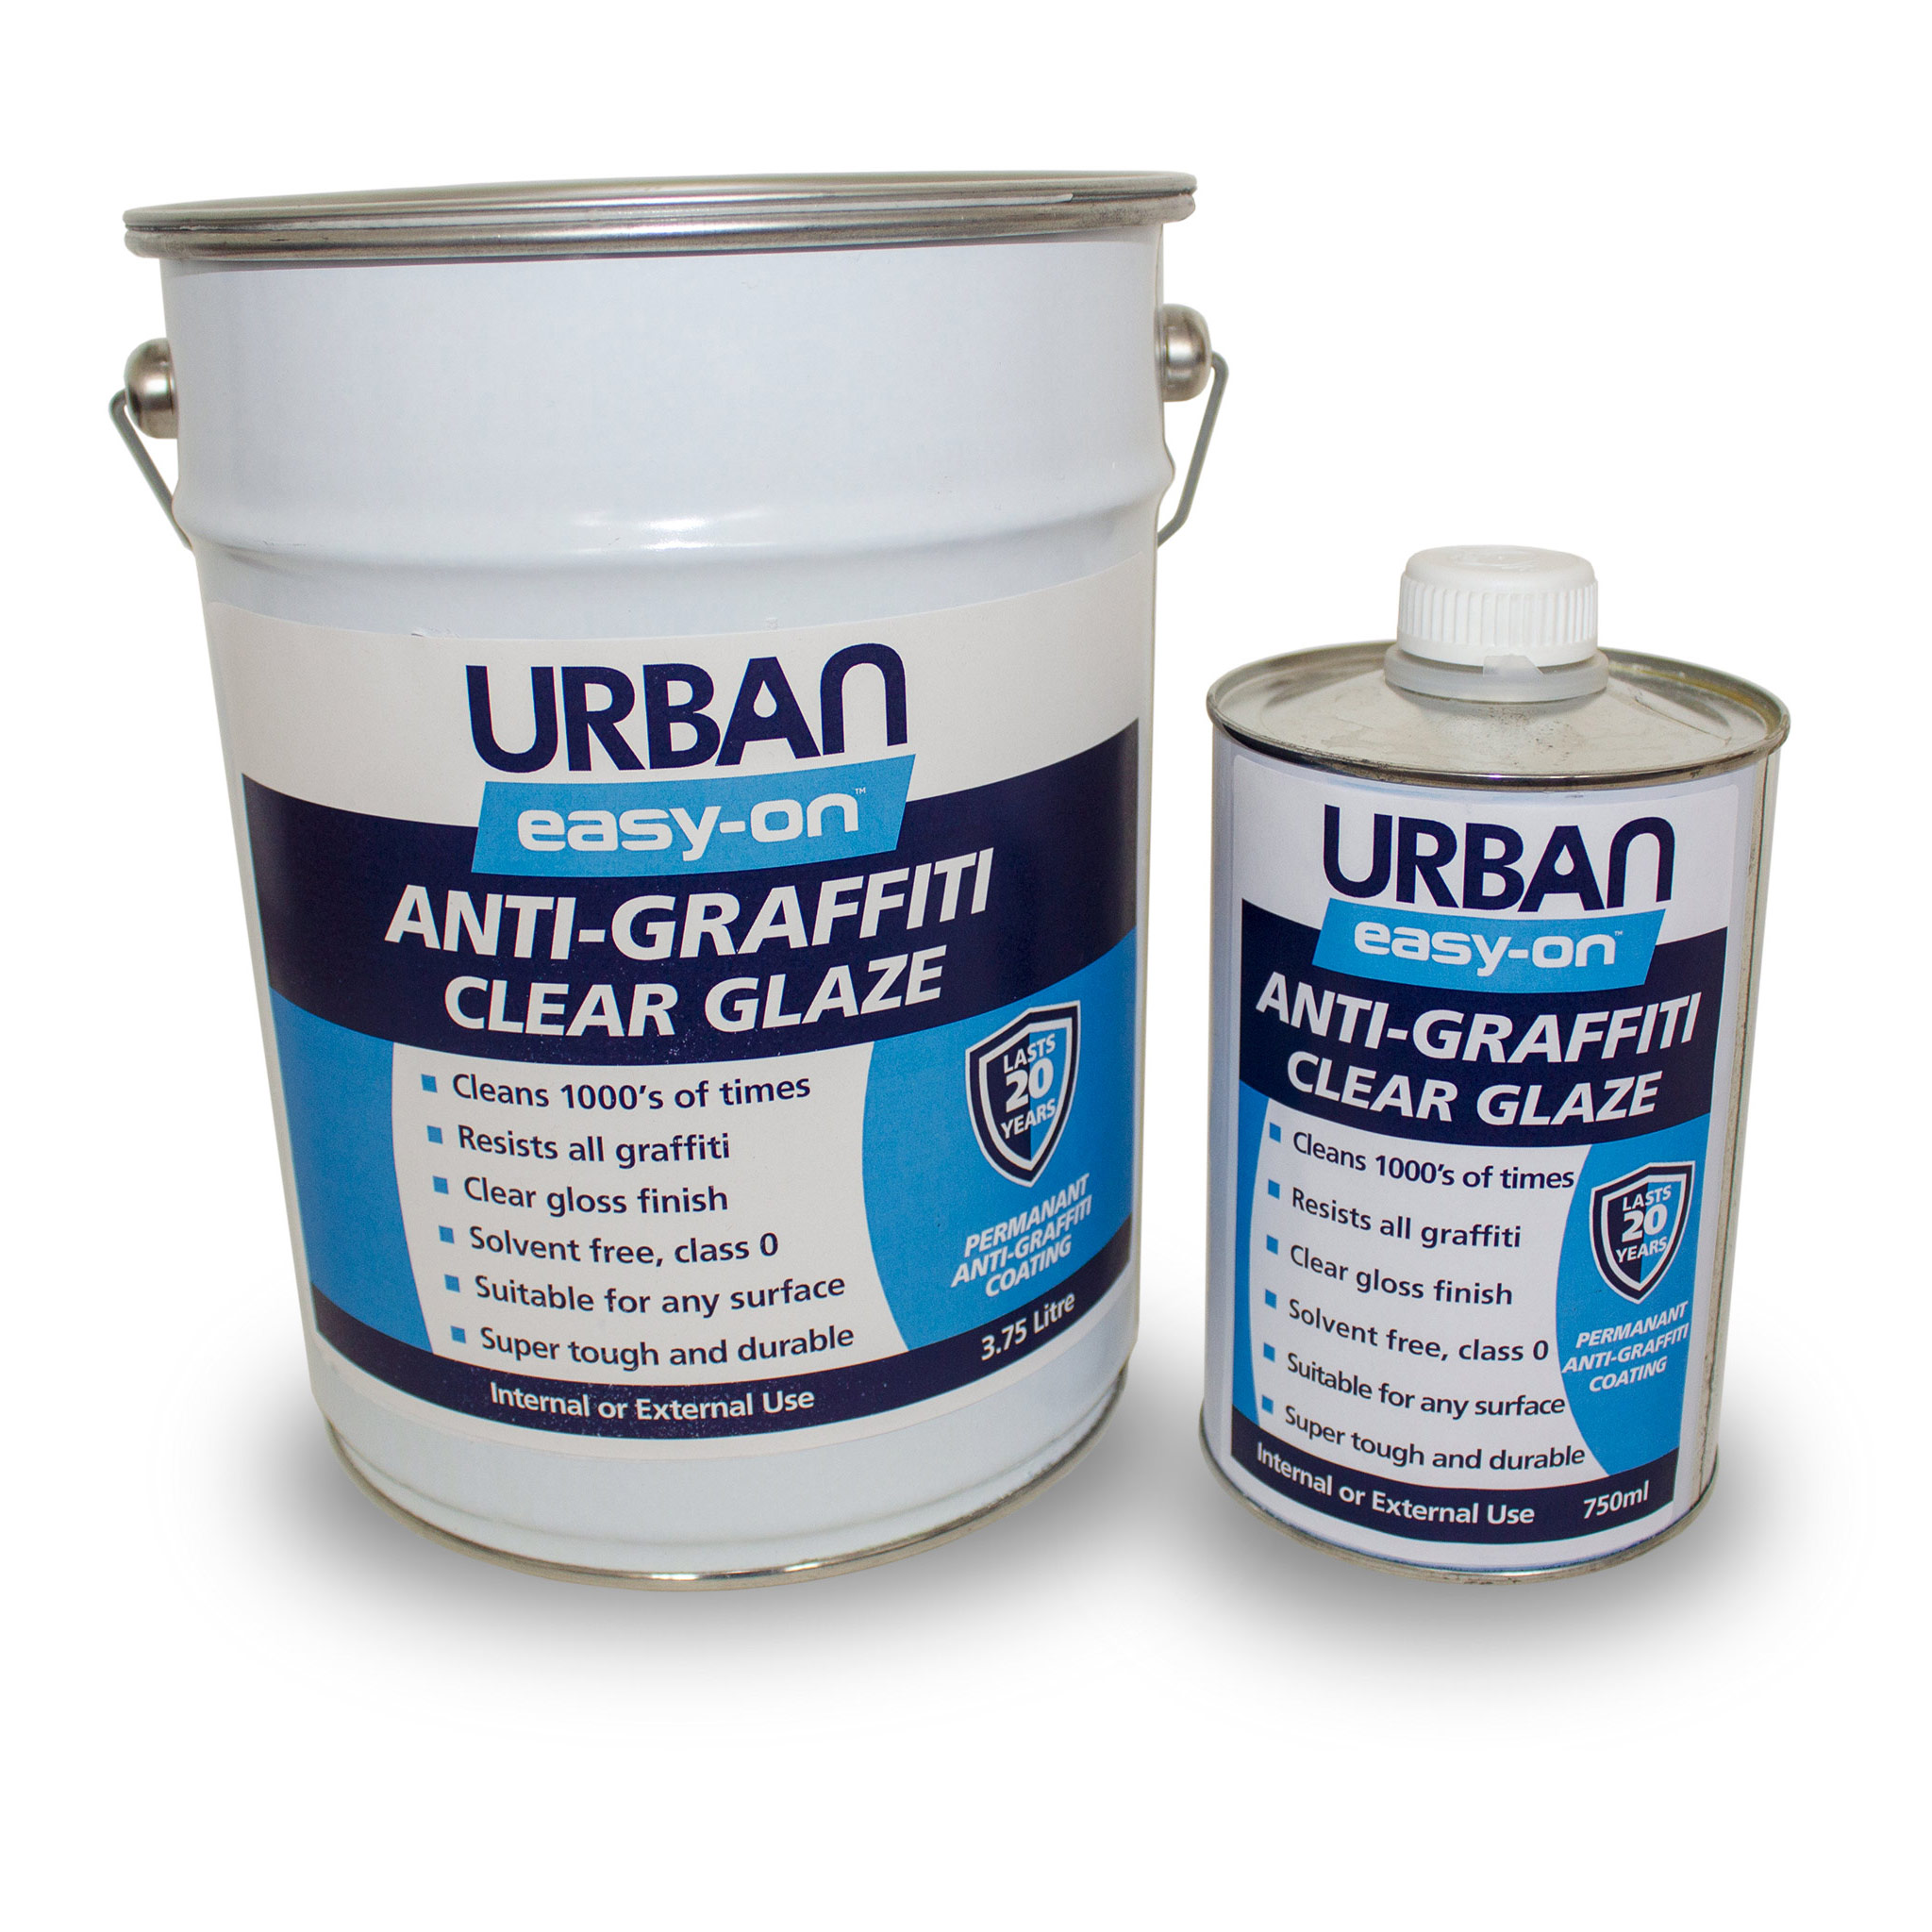 anti graffiti coating, anti graffiti, anti vandal paint, durable wall coating, wall coating, clear glaze